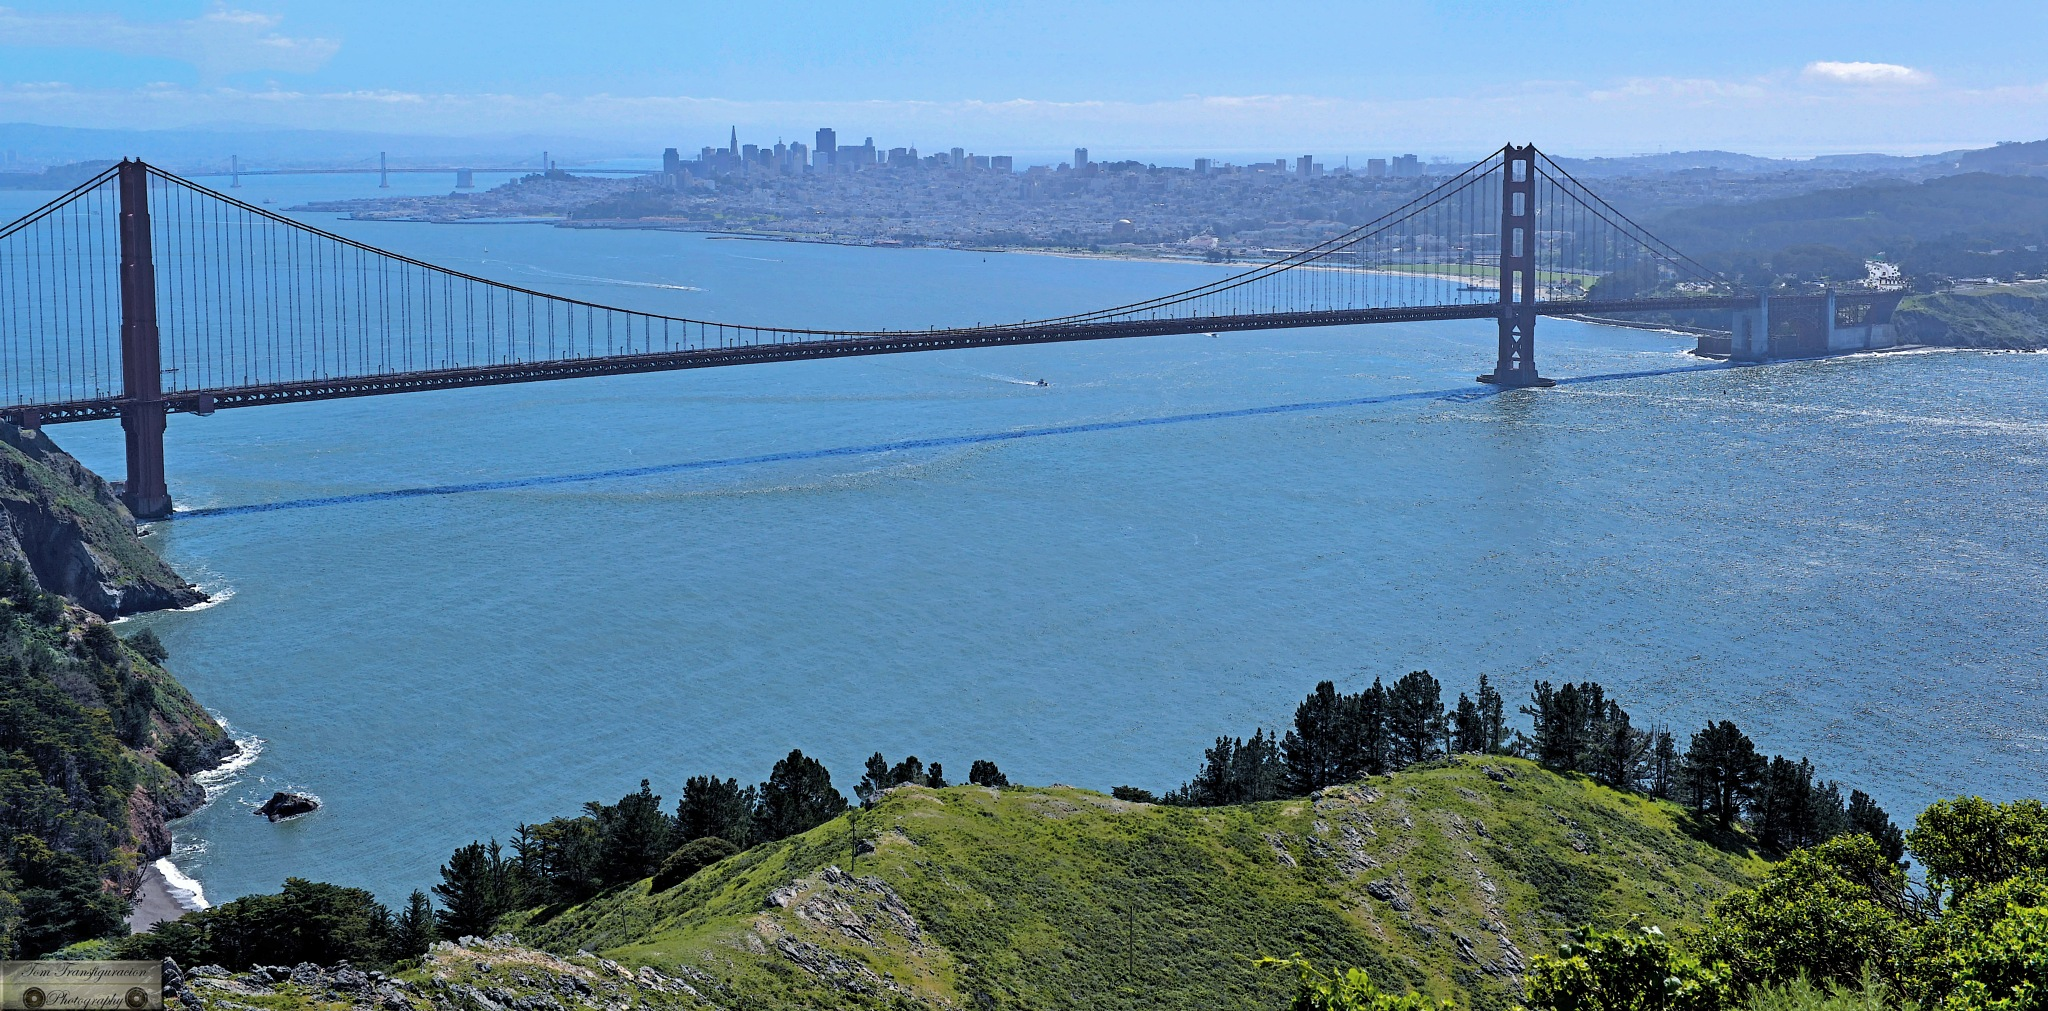 Top view of Golden Gate Bridge by Transfiguracion Images